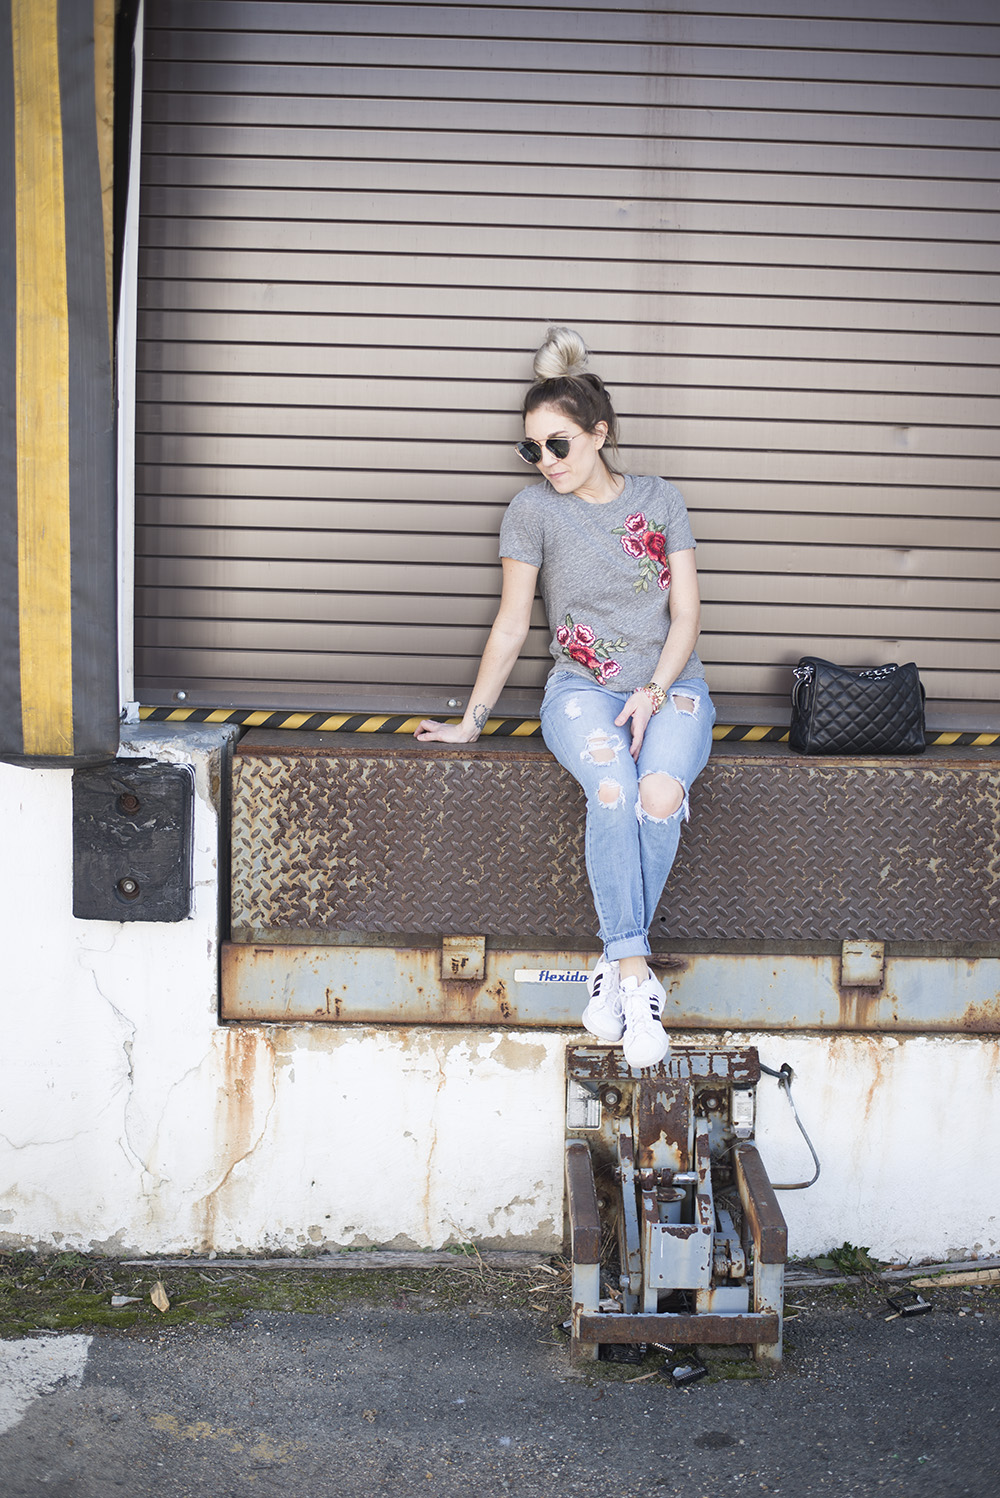 Embroidered roses tee paired with jeans and tennis for a comfortable but chic daytime look.